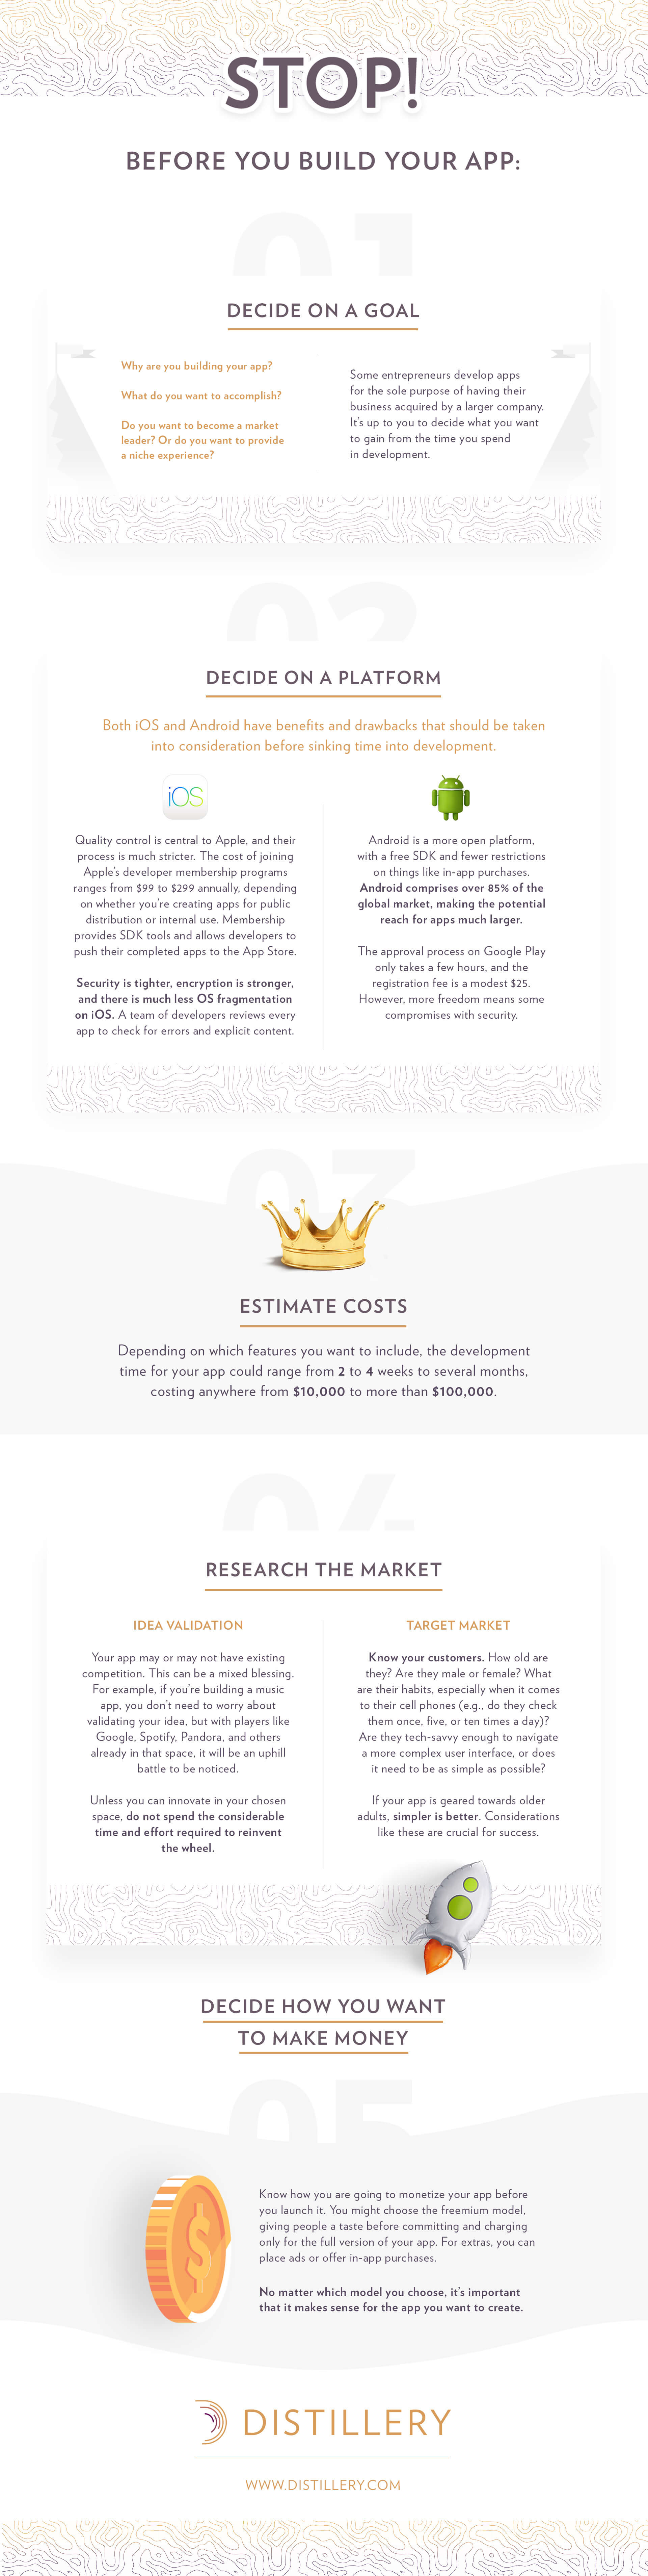 Before you build your App Infographic